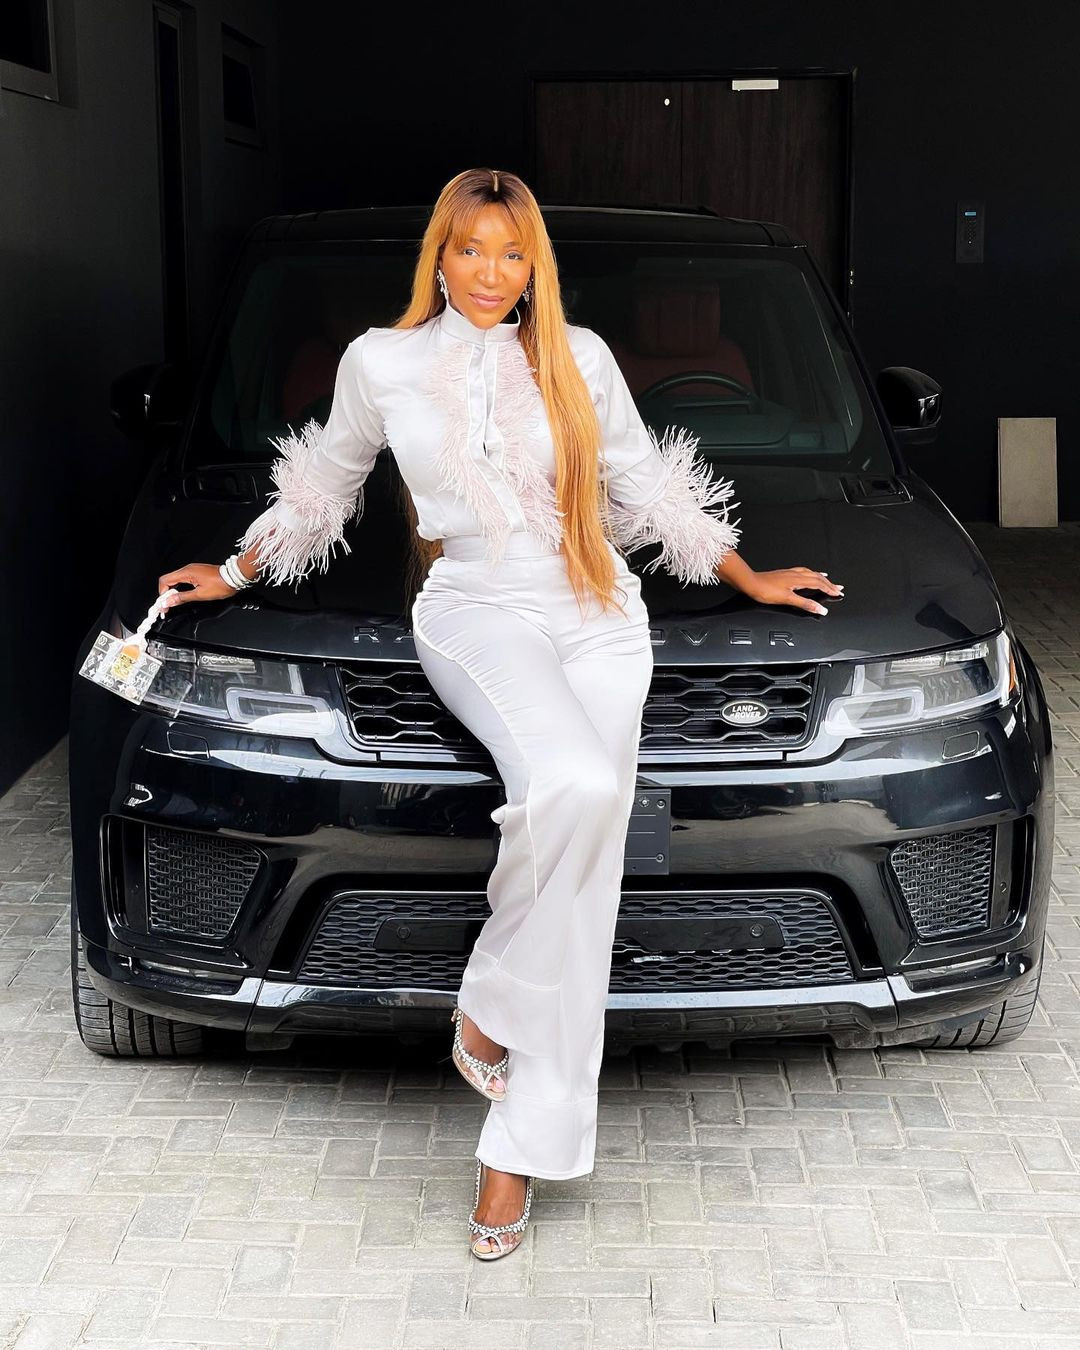 Aisien shows off the amazing car she got as birthday gift